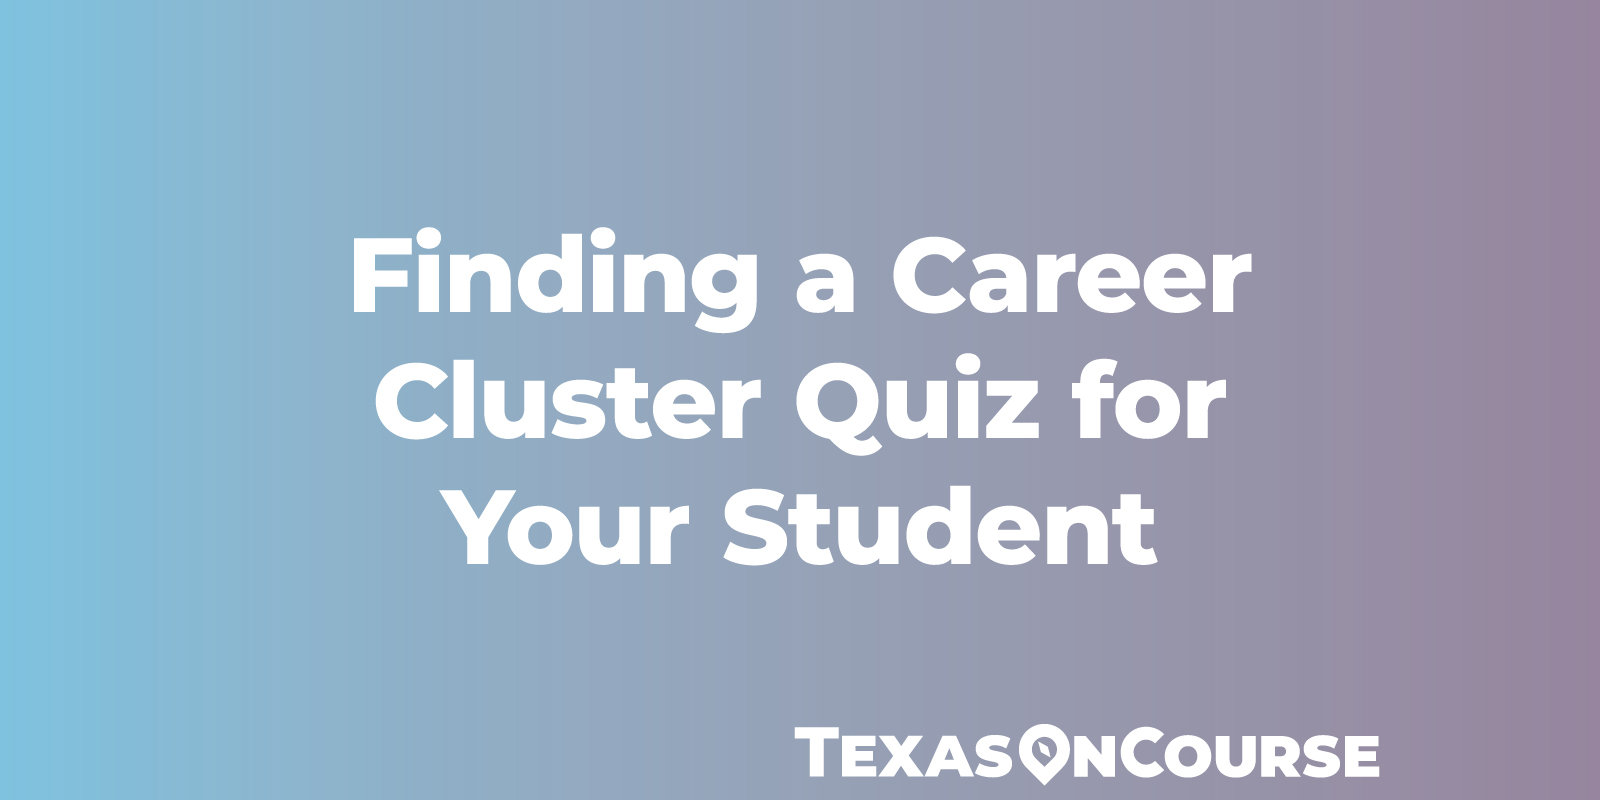 Finding a Career Cluster Quiz for Your Student